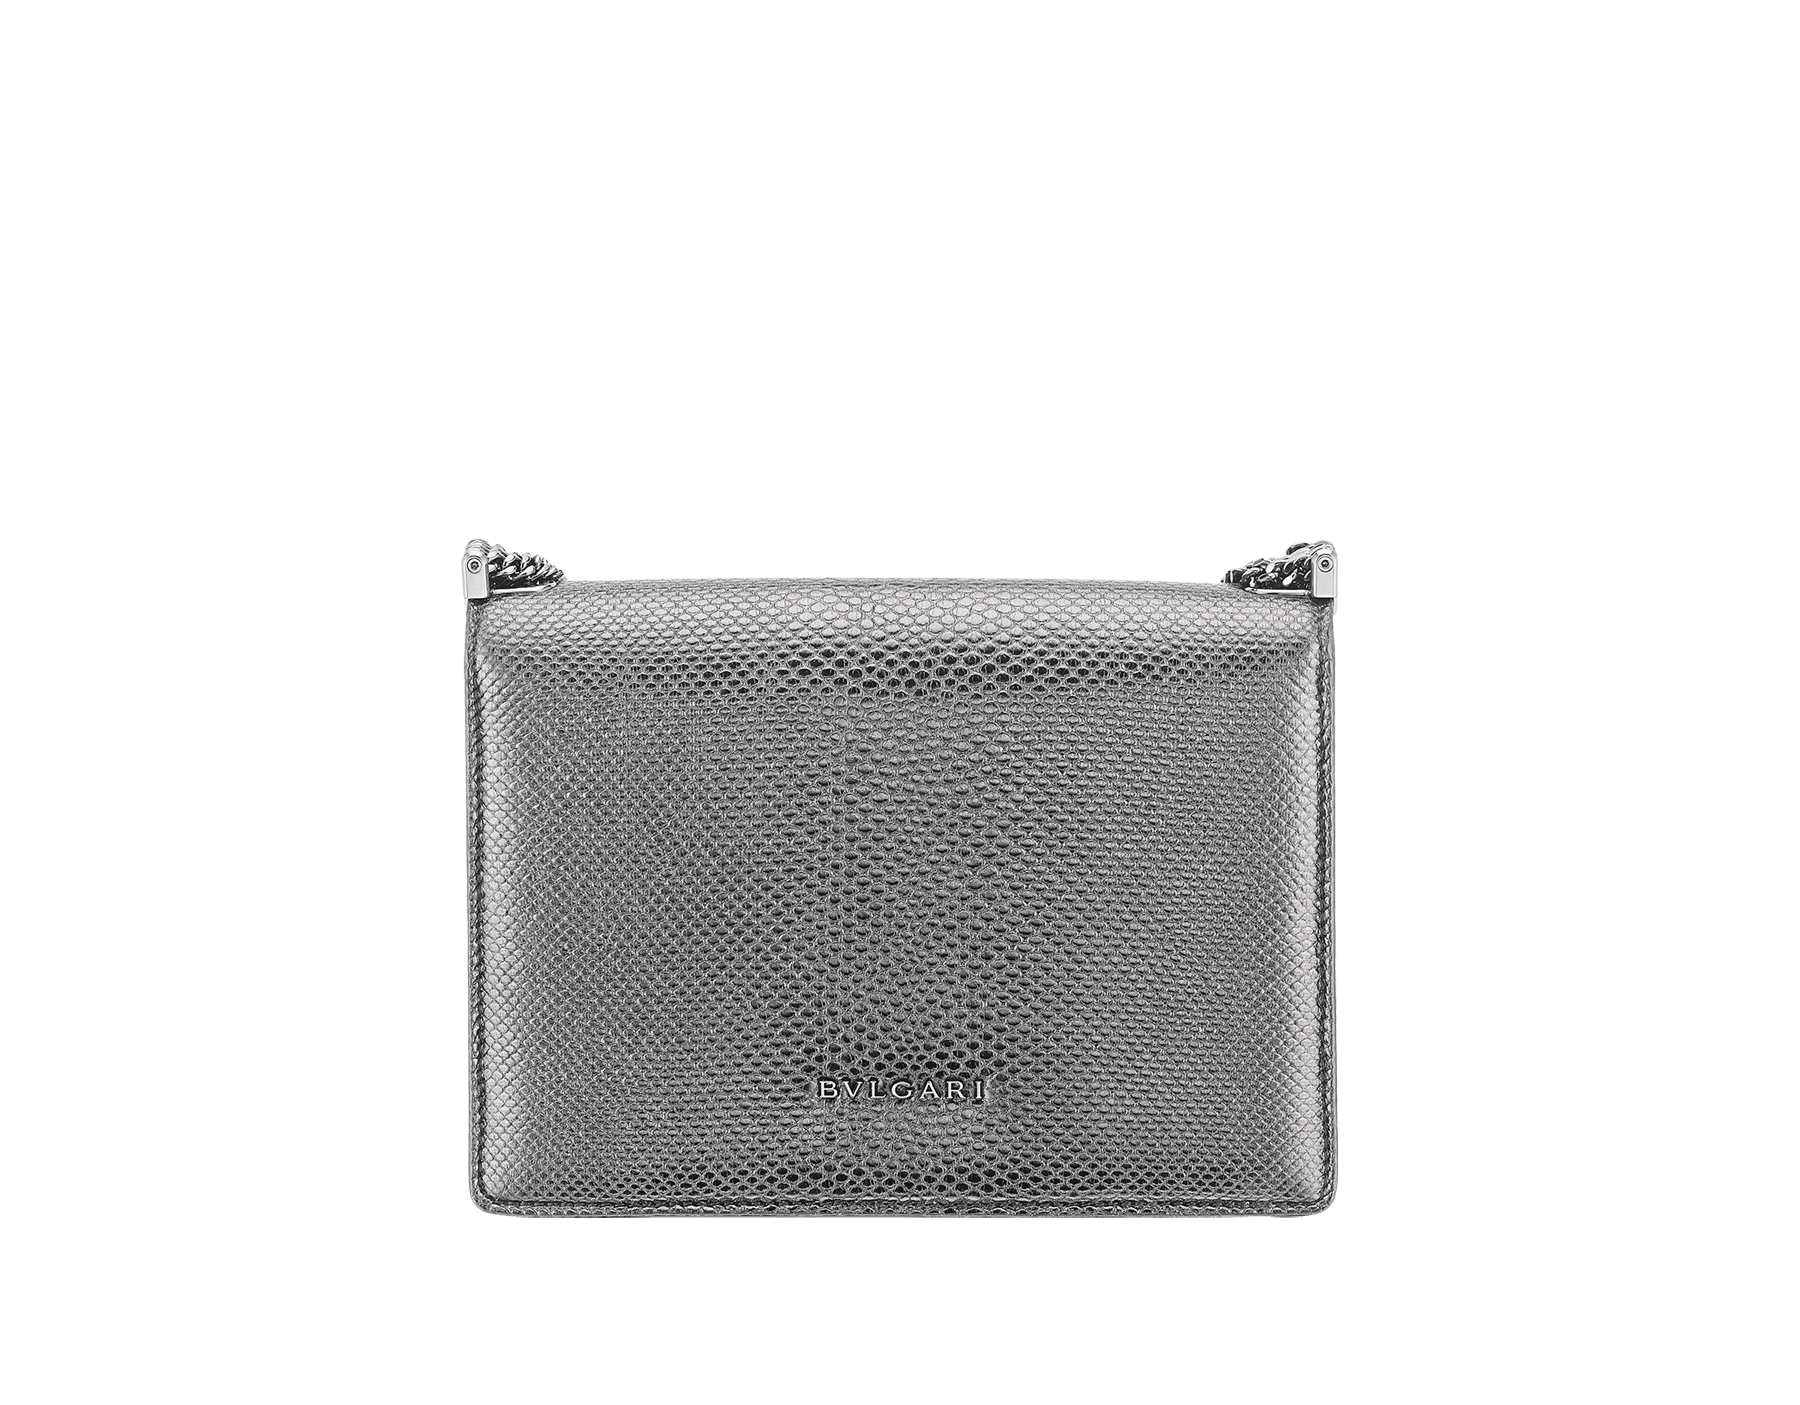 """Serpenti Forever"" multichain shoulder bag in ""Molten"" Charcoal Diamond grey karung skin with black nappa leather inner lining, offering a touch of radiance for the Winter Holidays. New Serpenti head closure in dark ruthenium-plated brass, complete with ruby-red enamel eyes. 290543 image 3"